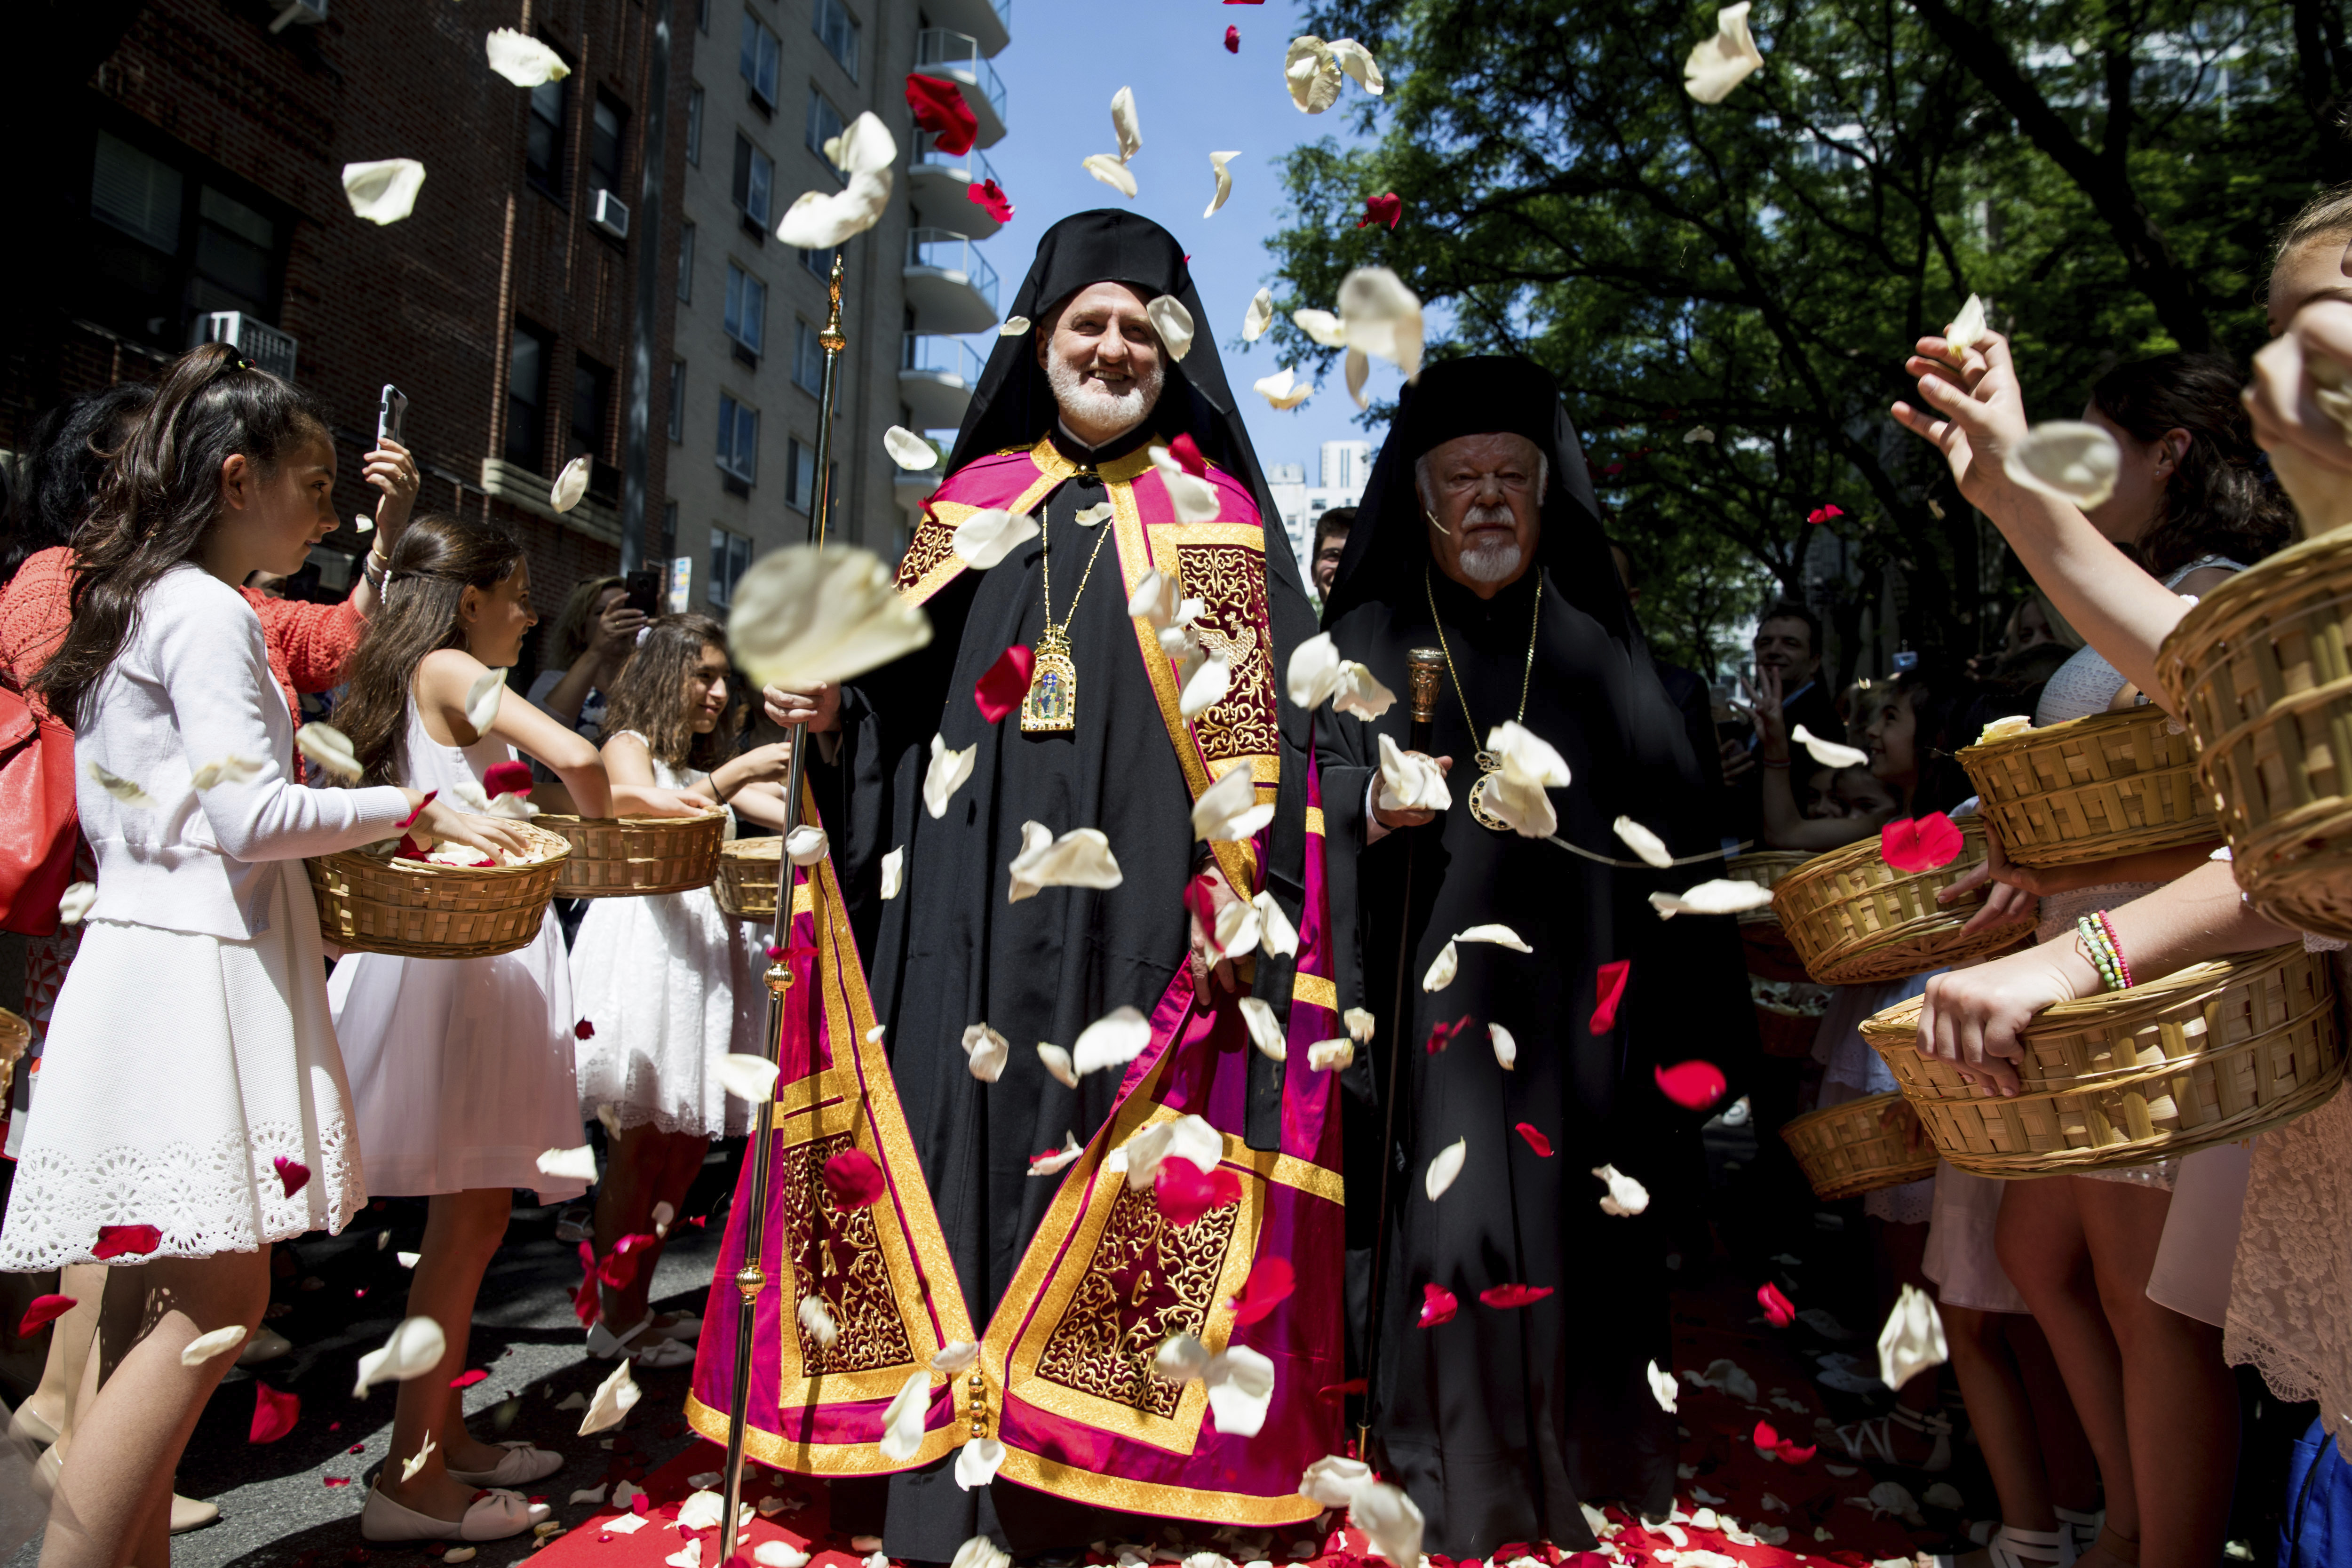 Archbishop Elpidophoros, center left, and Metropolitan Augoustinos of Germany, center right, walk toward the Archdiocesan Cathedral of the Holy Trinity for Elpidophoros' enthronement ceremony as the new archbishop for America as young girls throw flower petals, Saturday June 22, 2019, in New York. (AP Photo/Julius Motal)